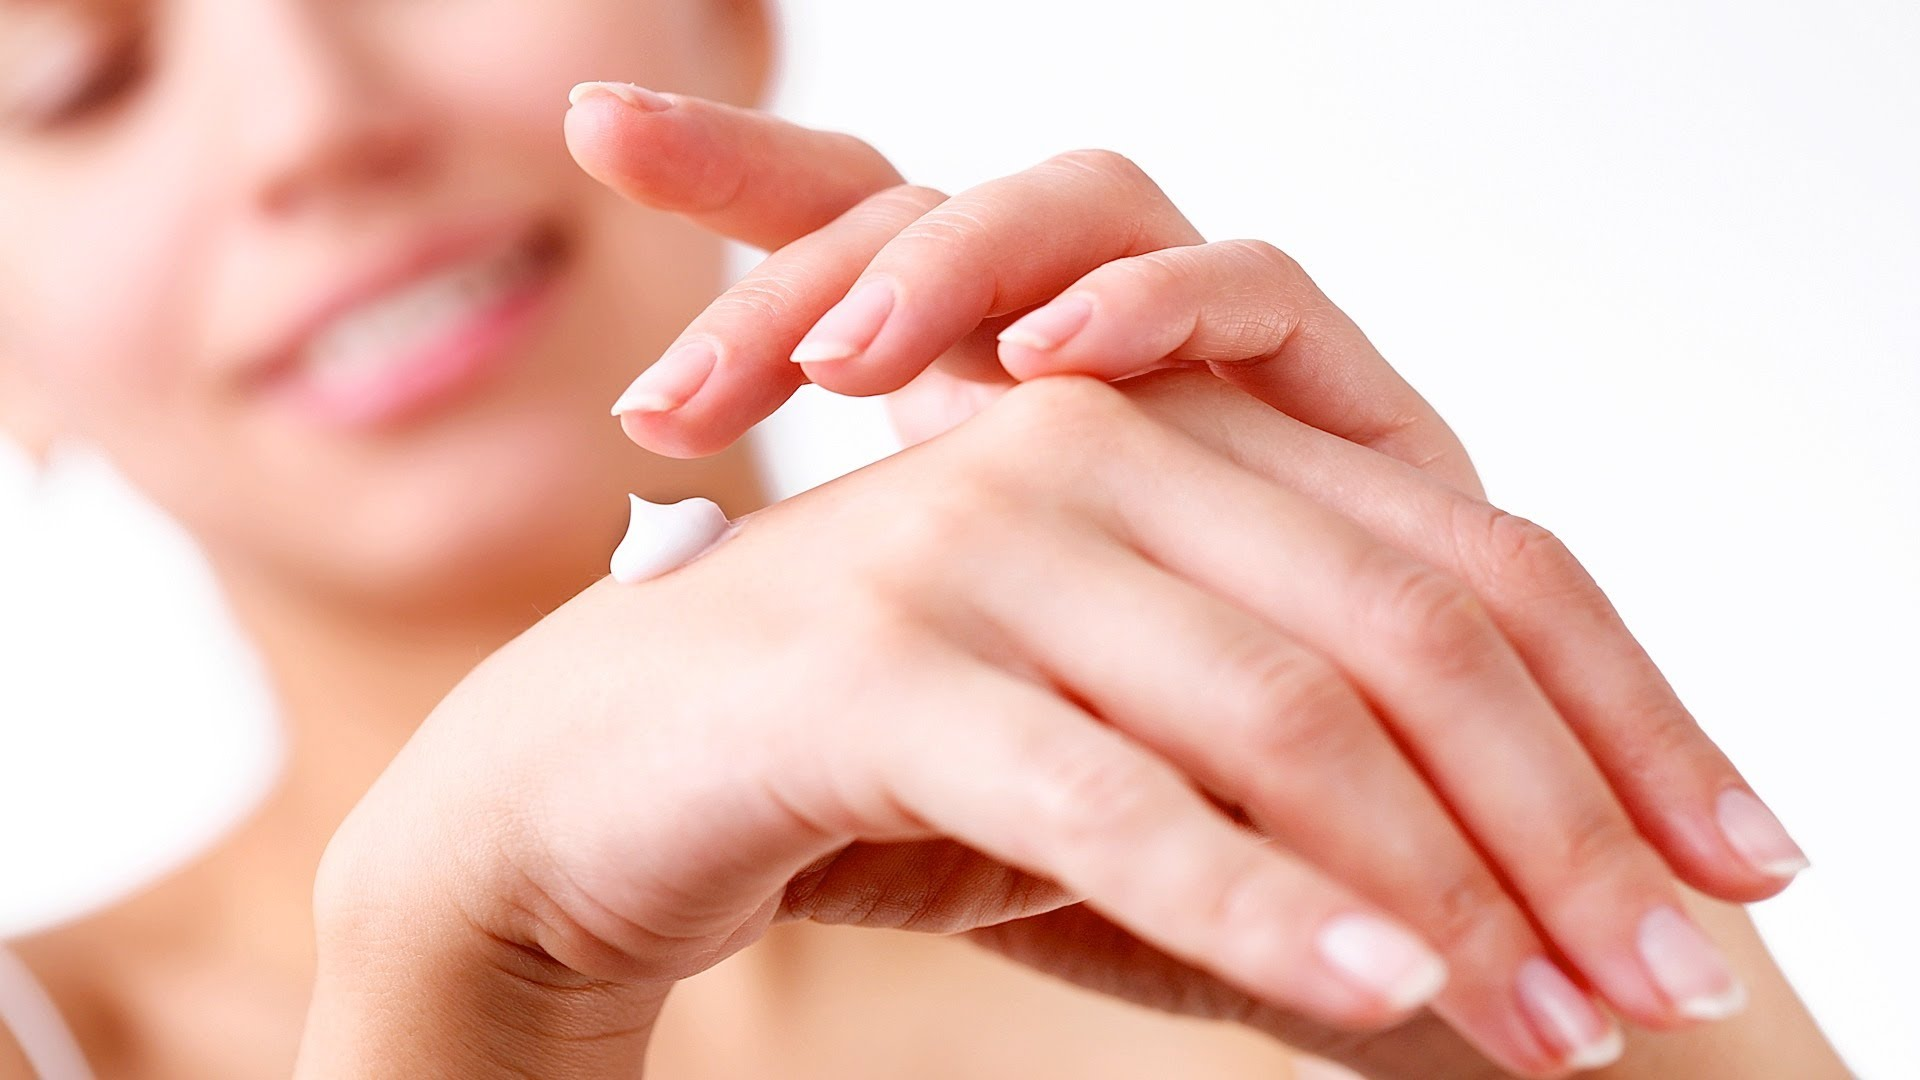 How to Take Care of Your Hands and Nails in the Cold Season